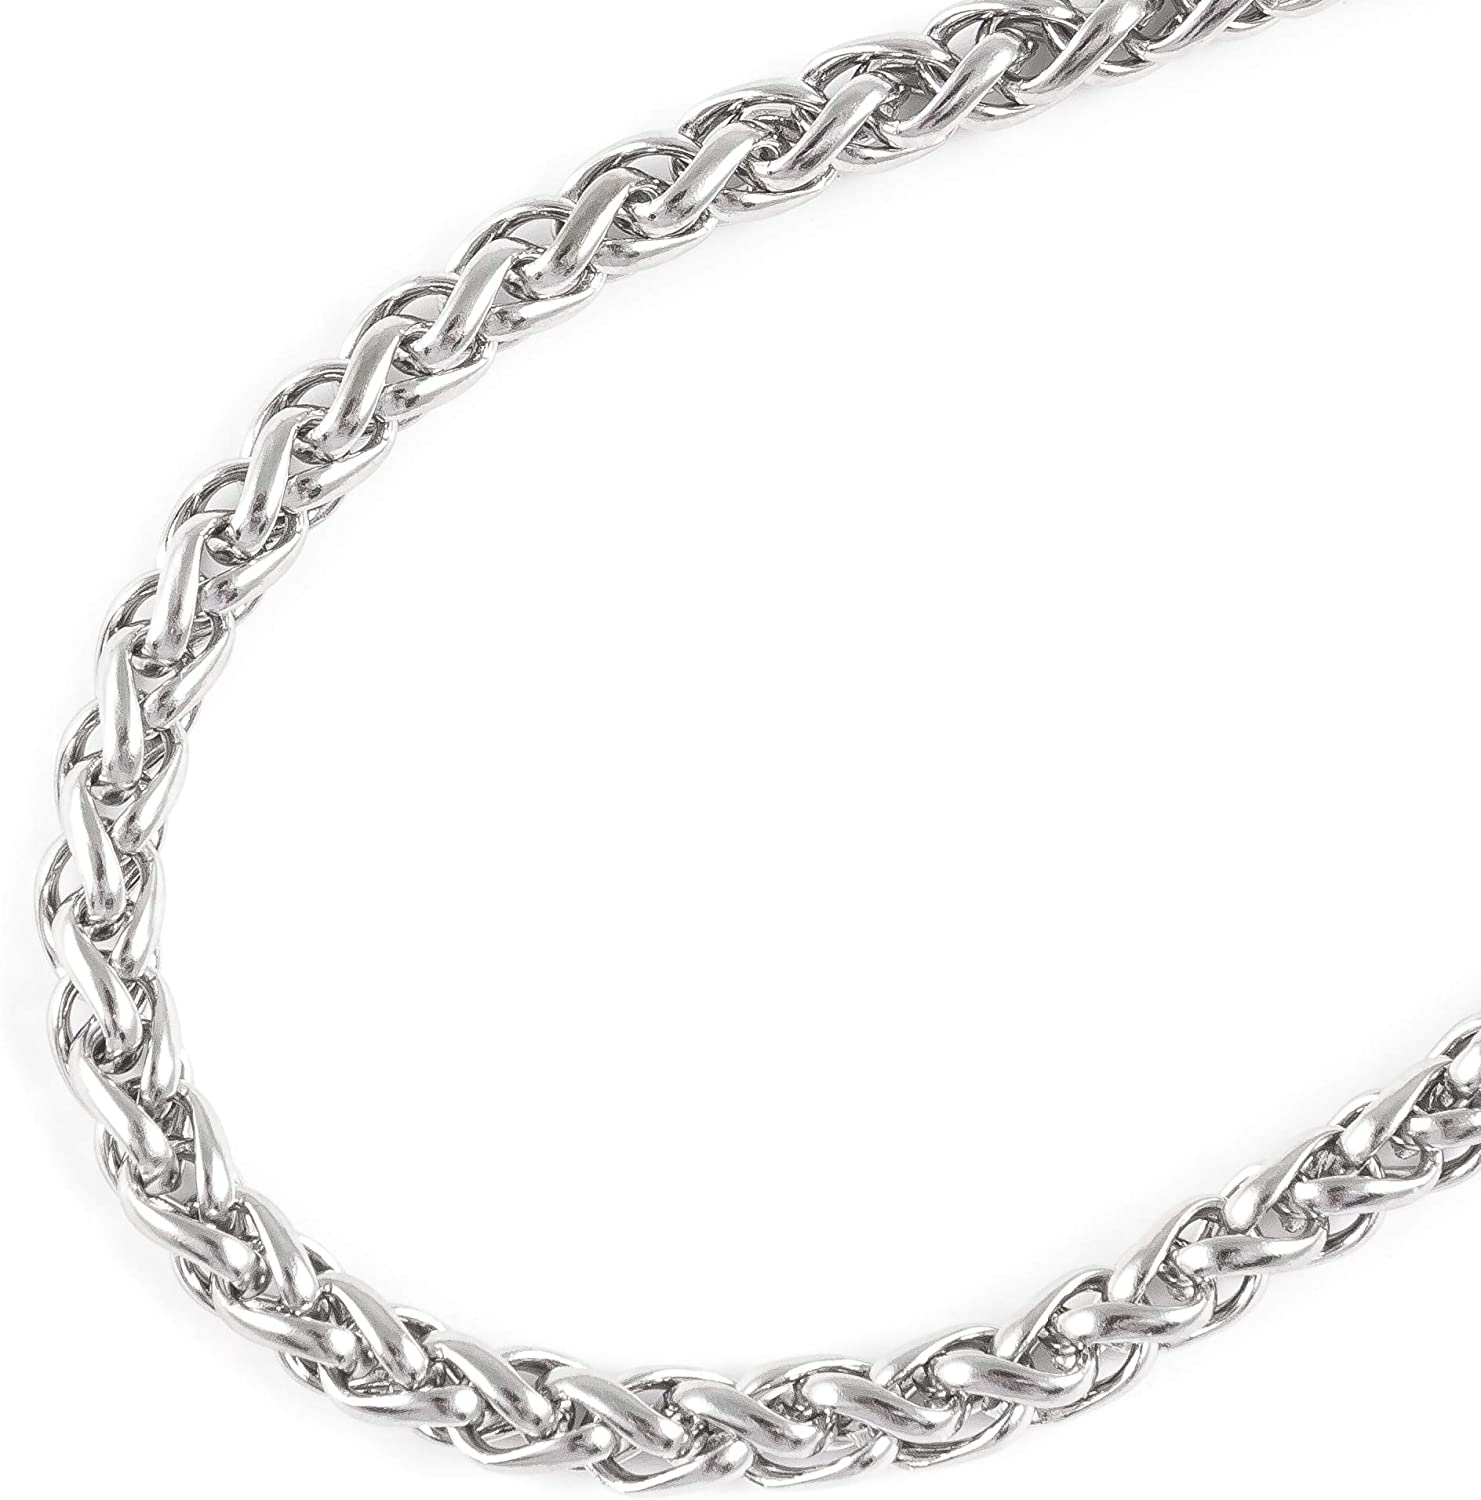 JFSG 316L Stainless Steel Wheat Link Chain Necklace For Men Or Women 3/4/5/6mm 16 to 36 Inches